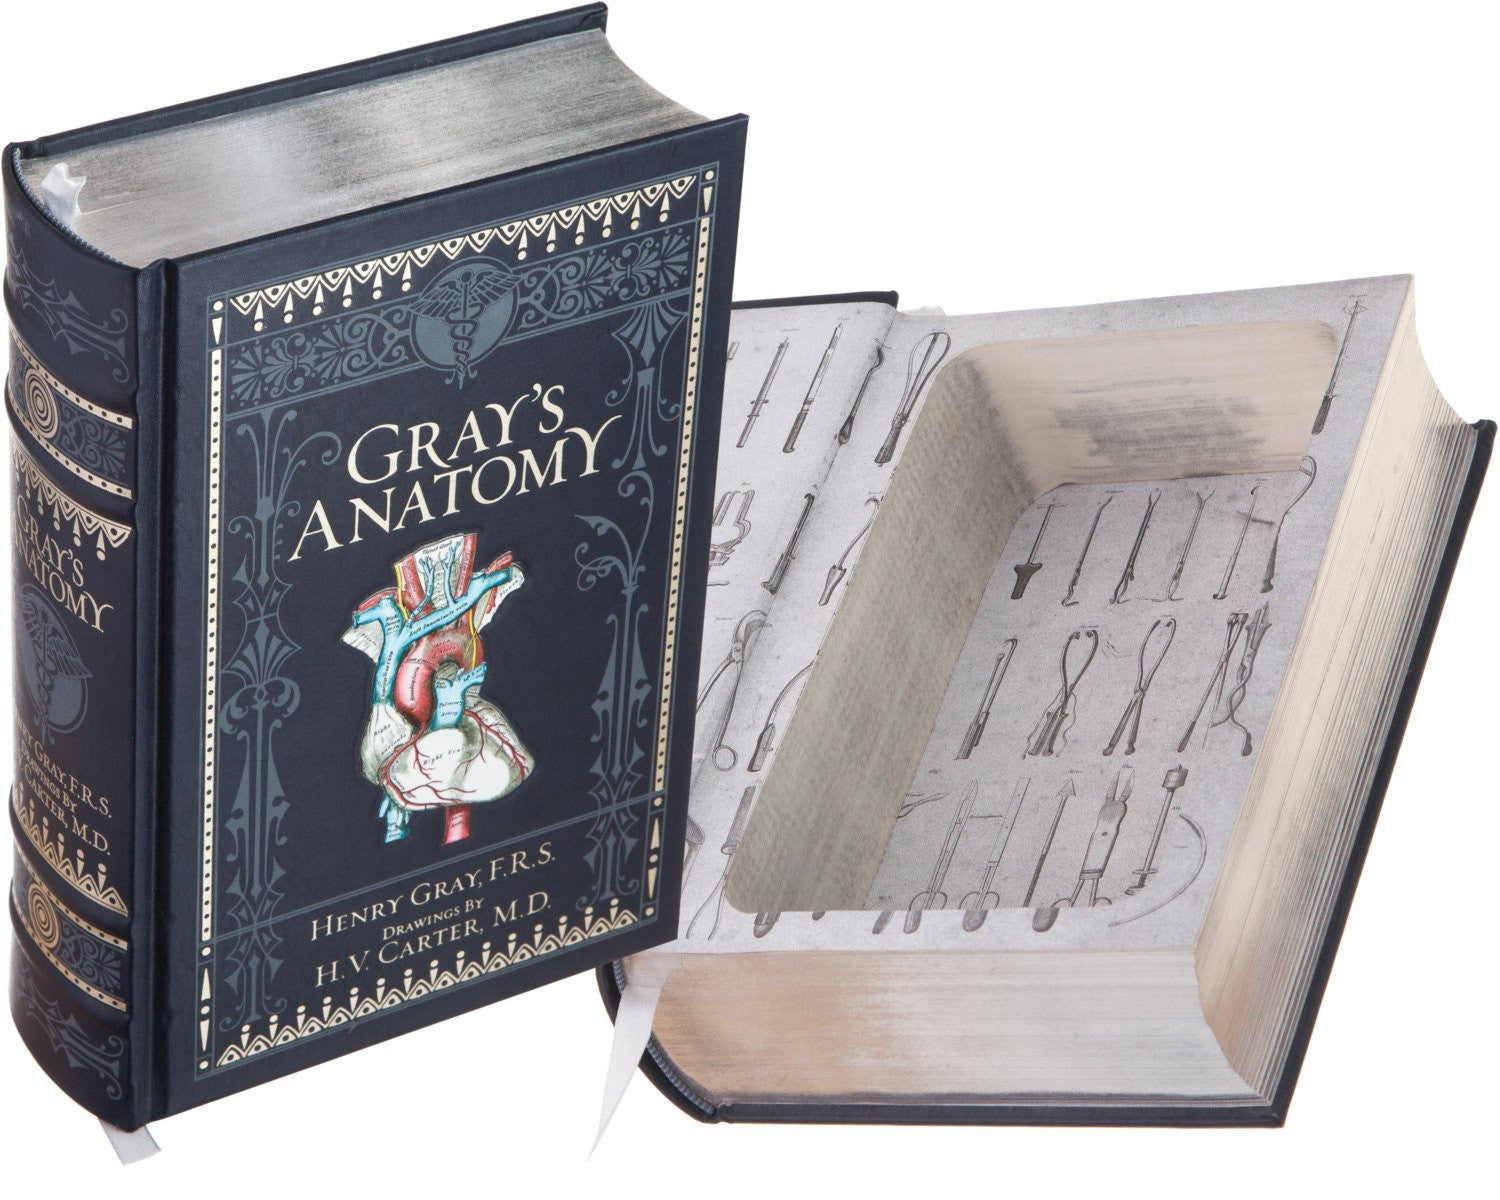 Grays Anatomy By Henry Gray Frs With Drawings By Hv Carter